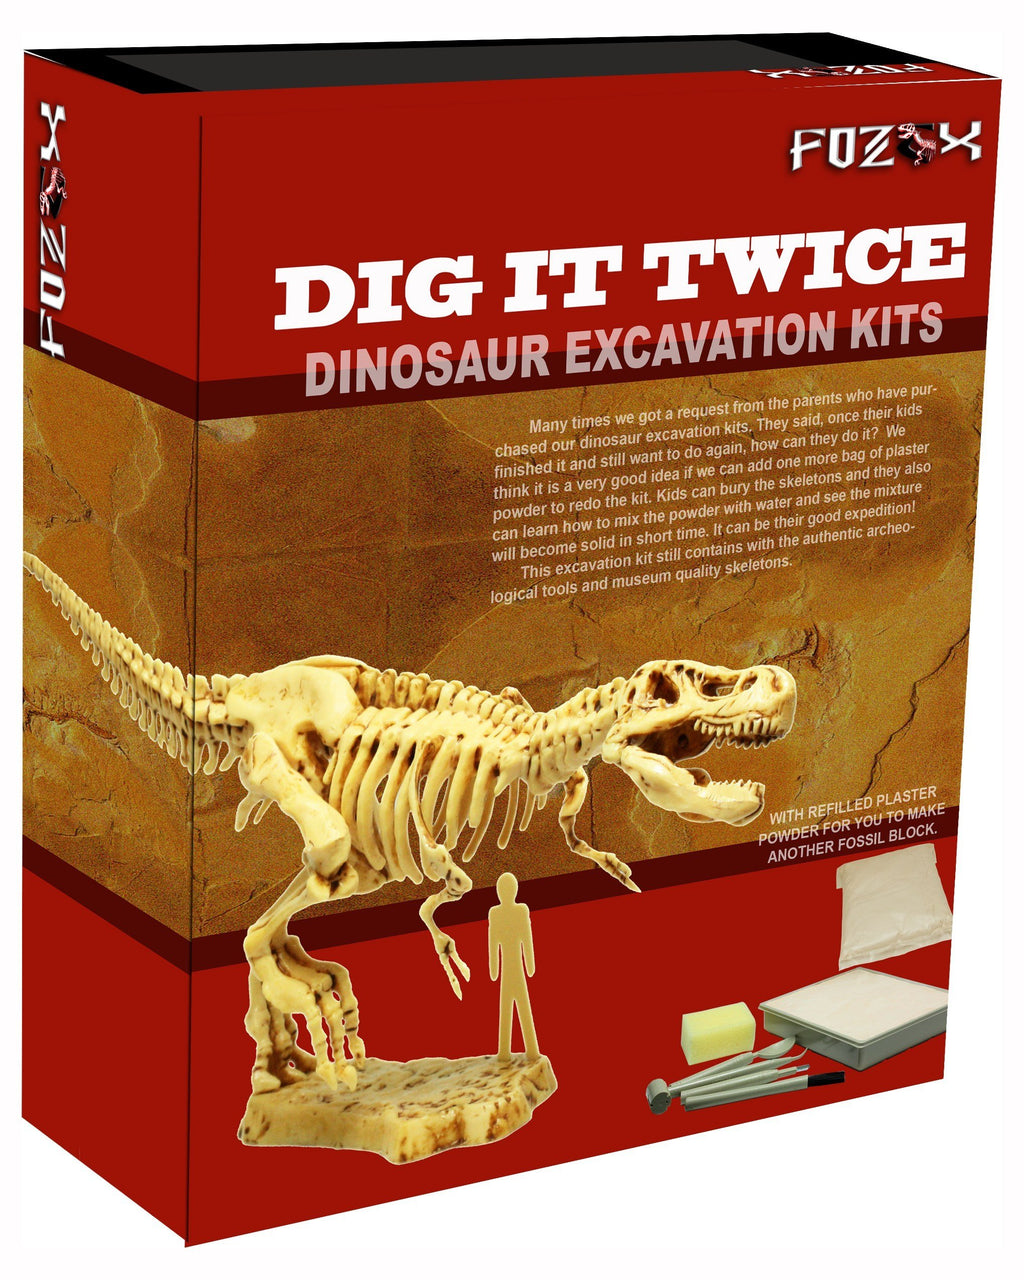 Mr Bottle's Kids Party: Dinosaur Skeleton Fossil Digging Set @ $33 with Delivery (U.P $41.90)